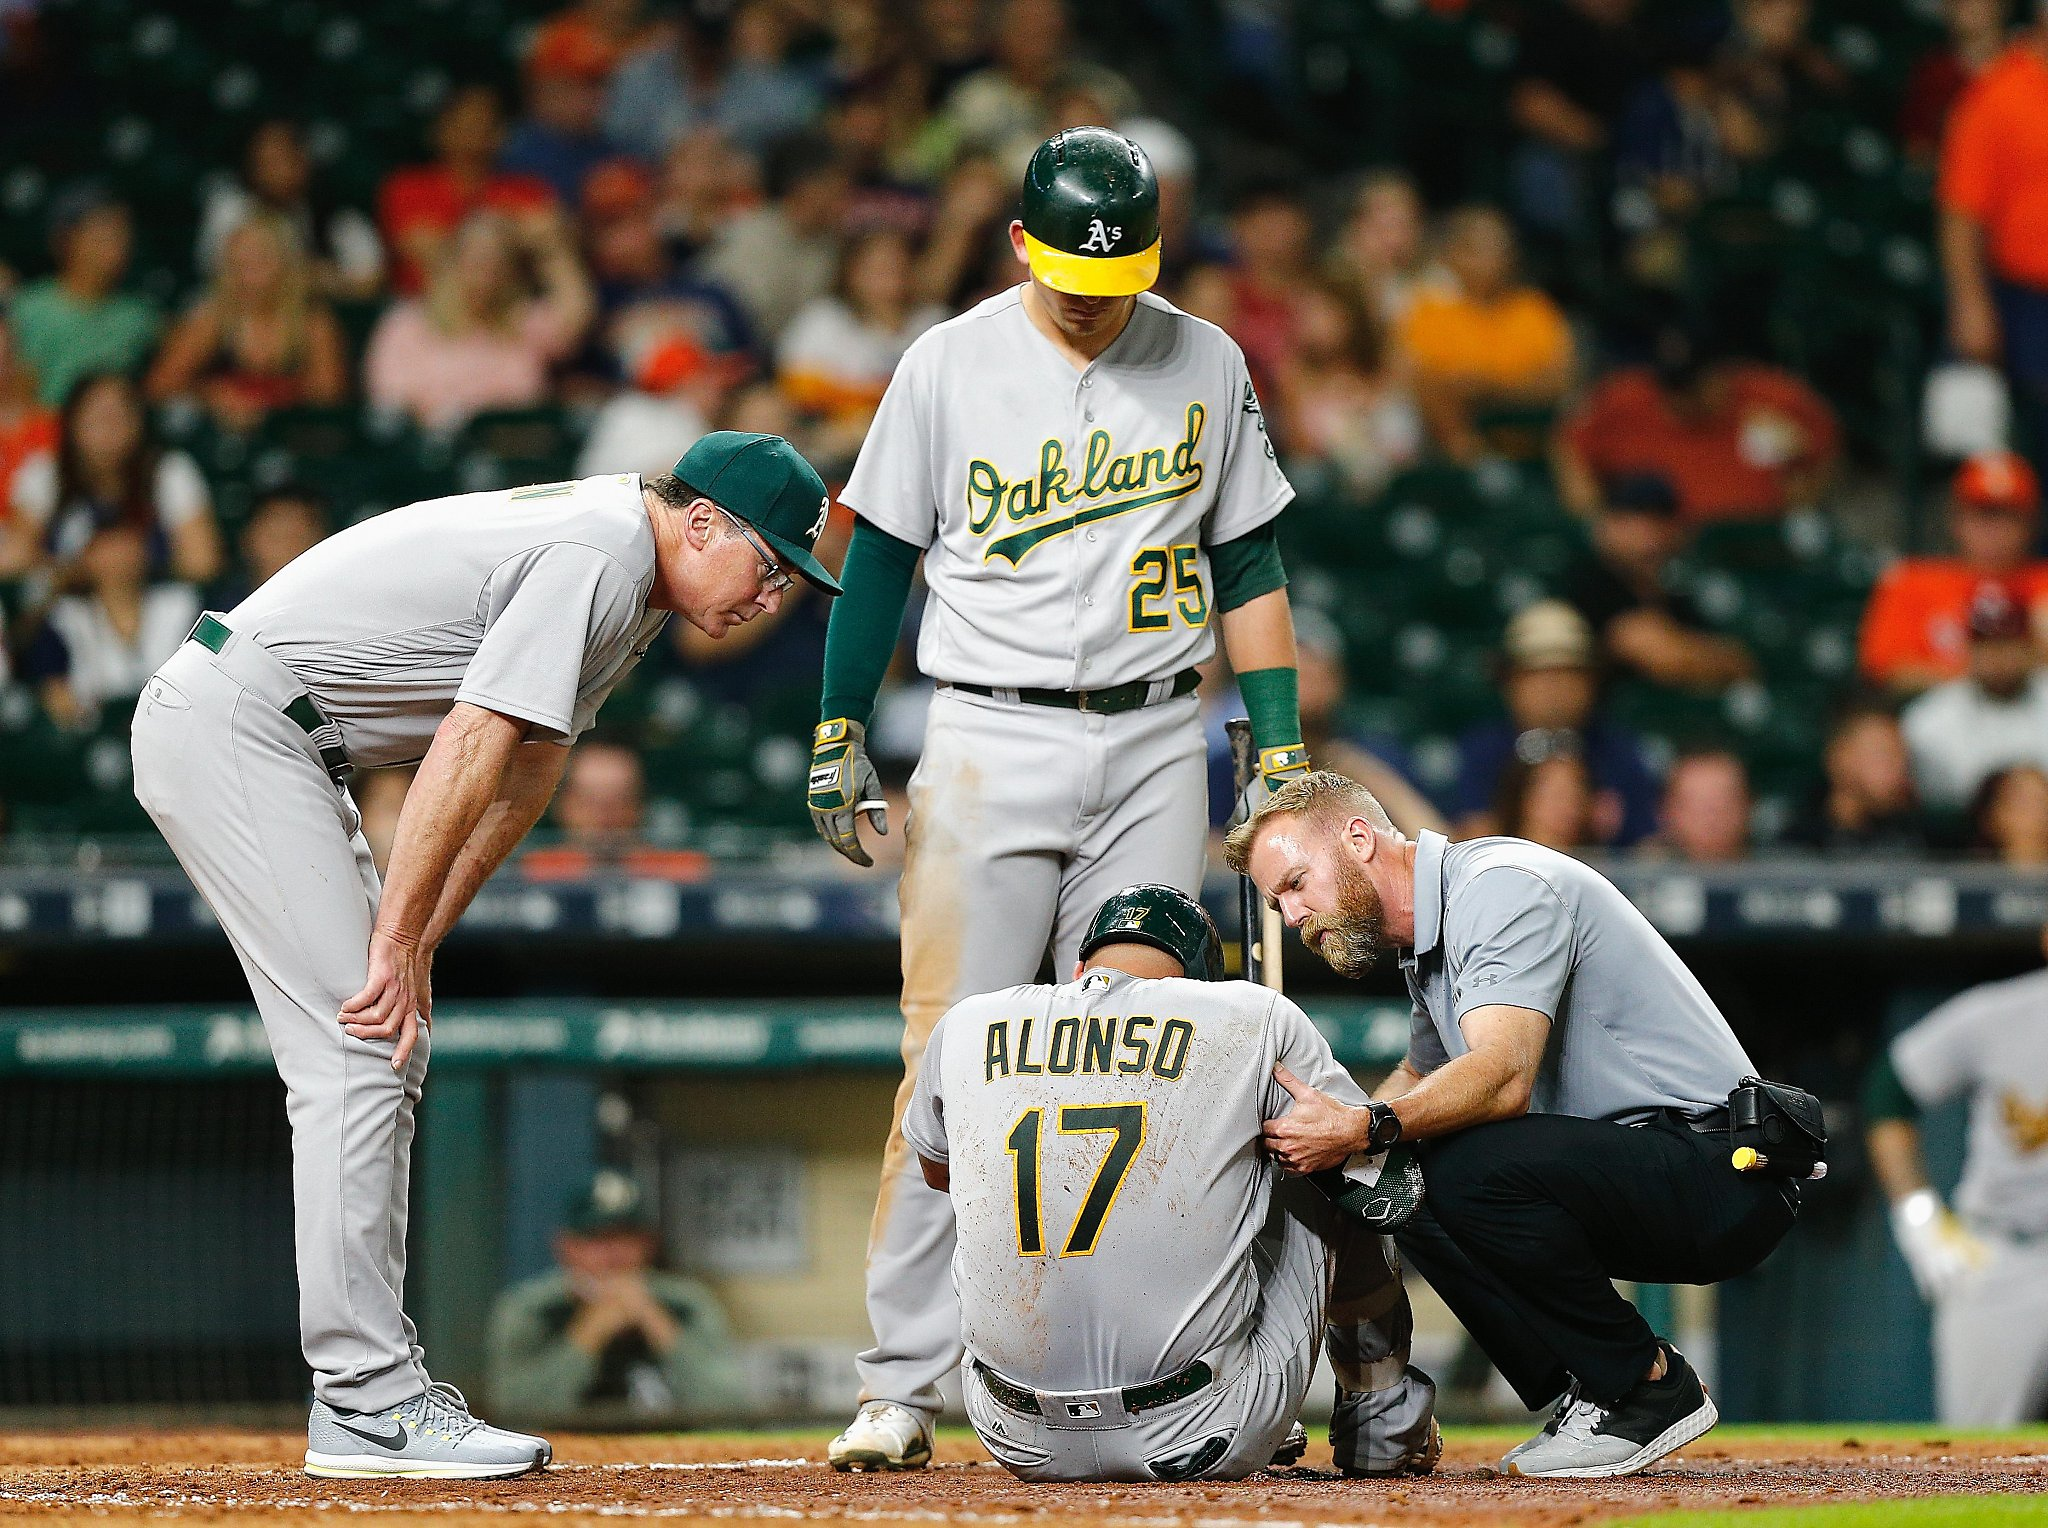 Yonder Alonso out of A's lineup with sore knee - San ...